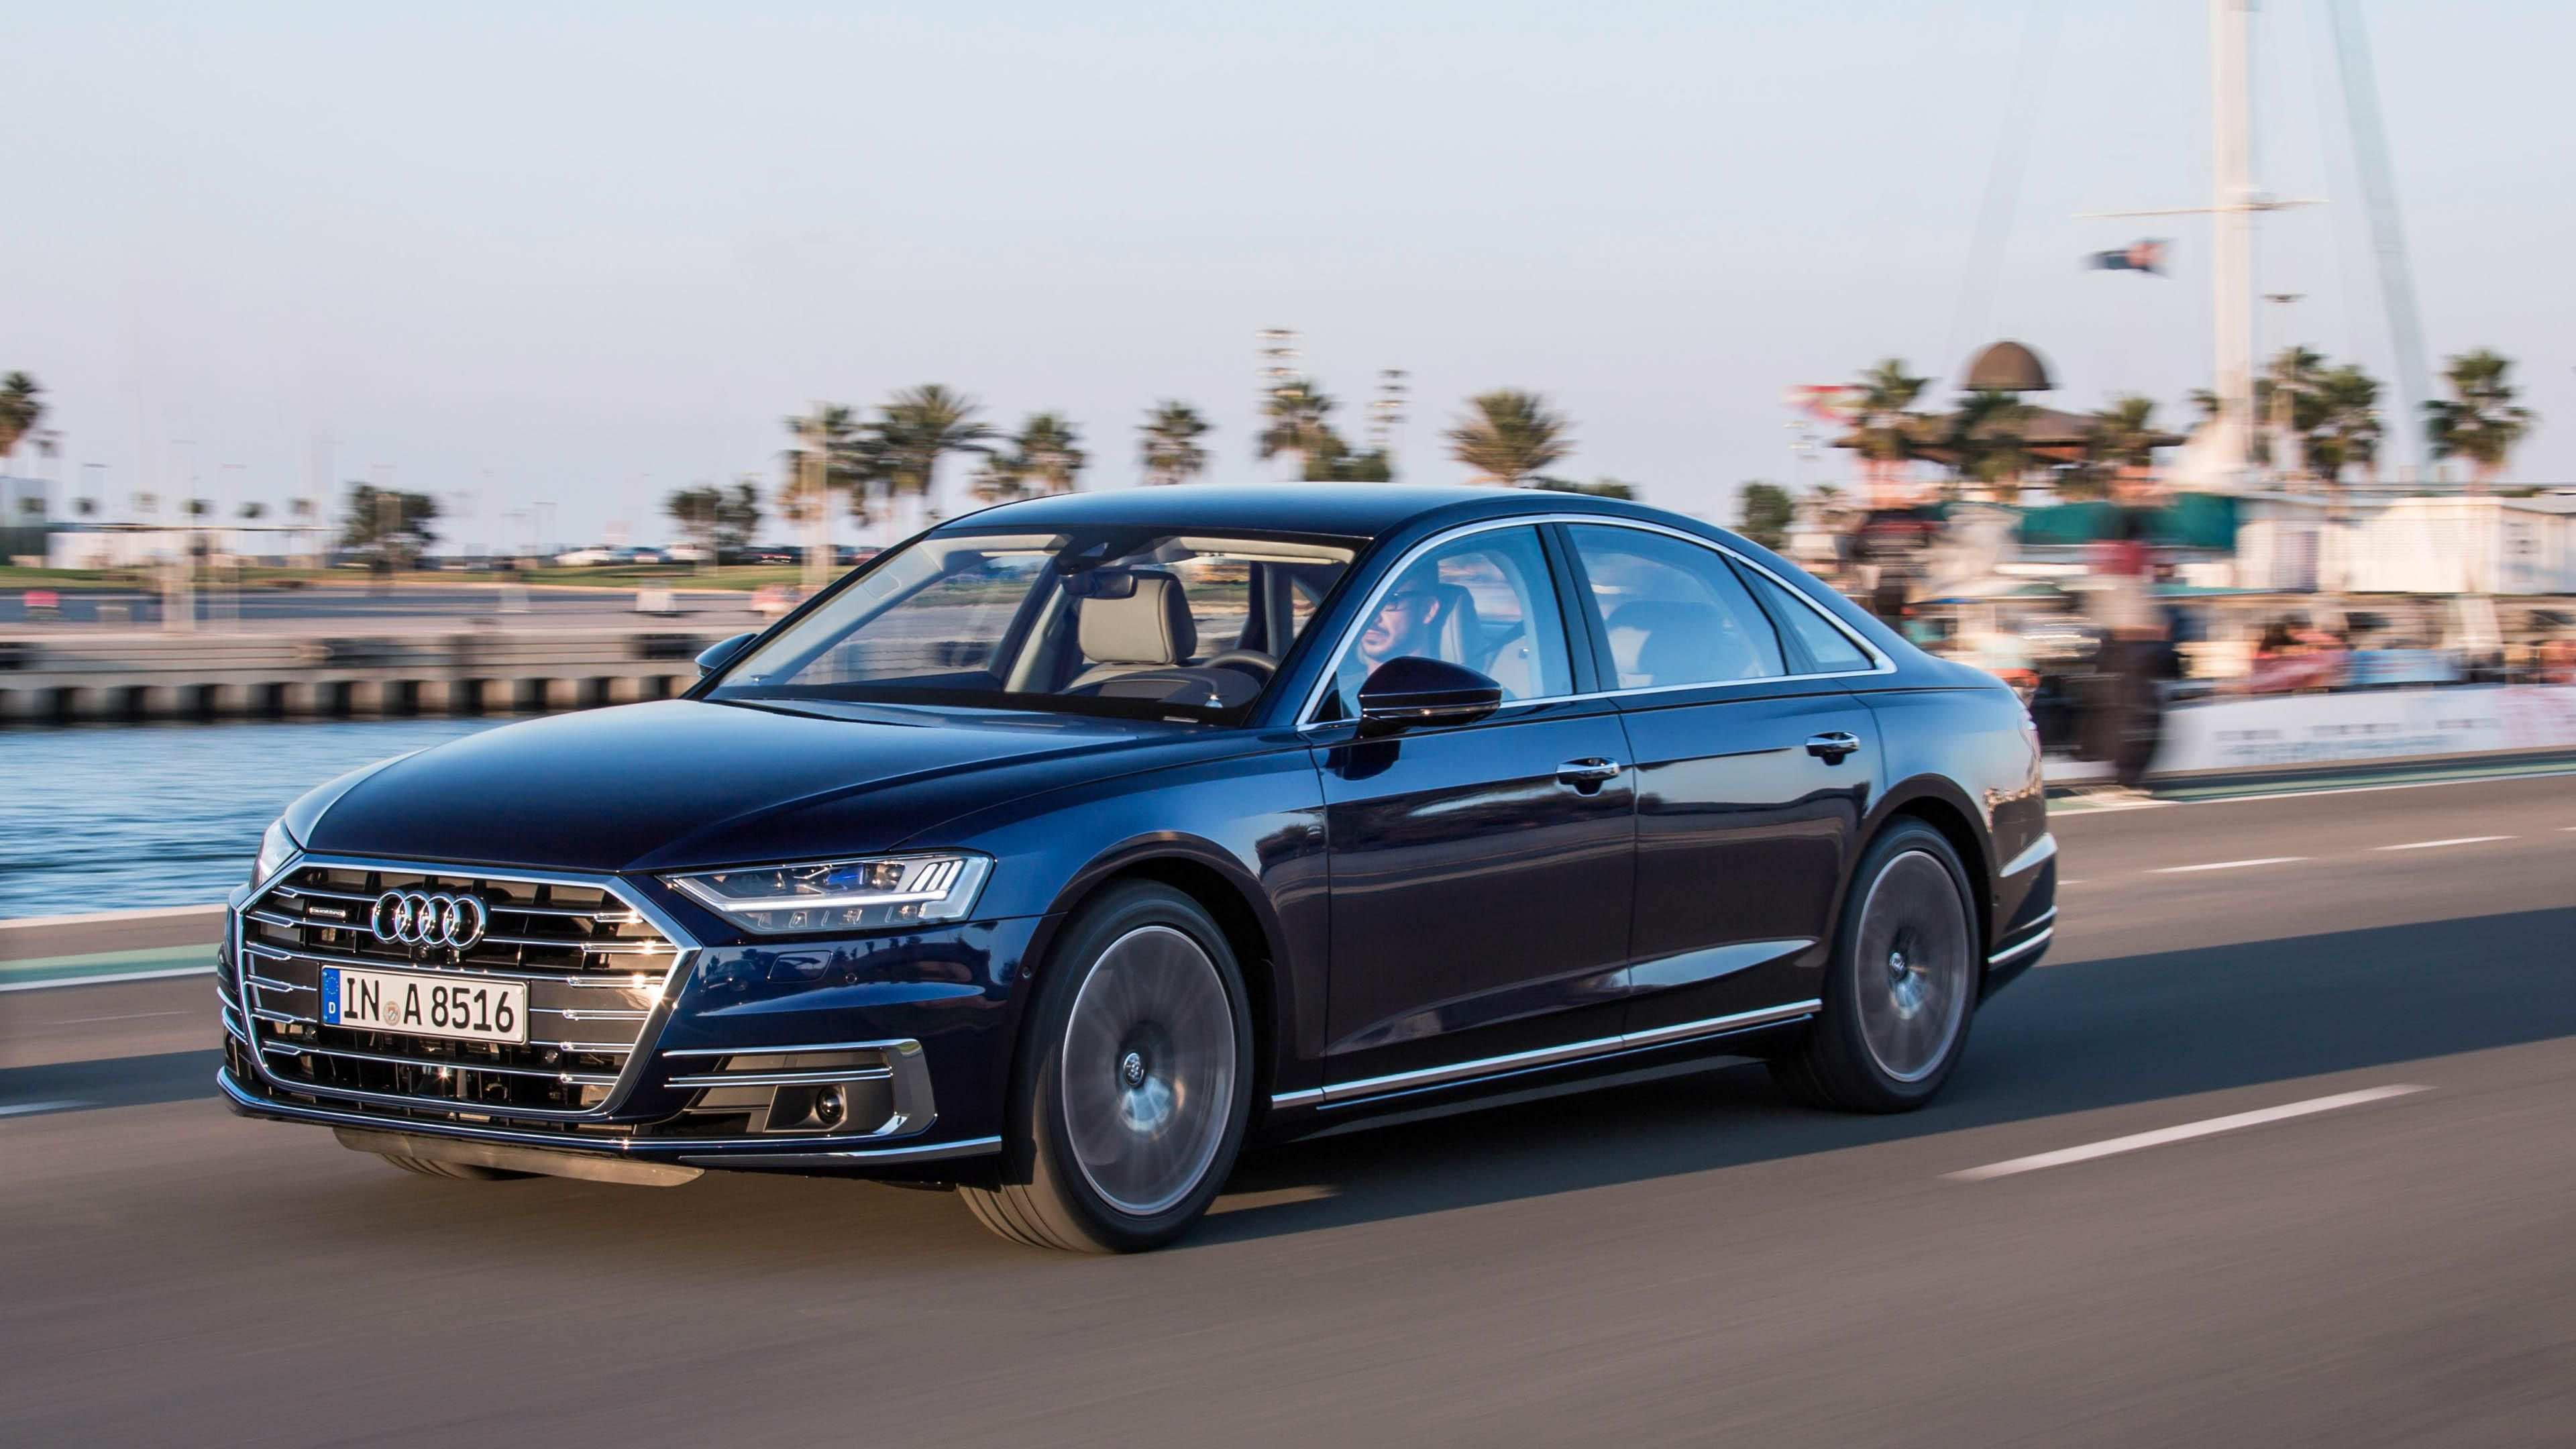 44 New 2019 Audi S8 Release with 2019 Audi S8